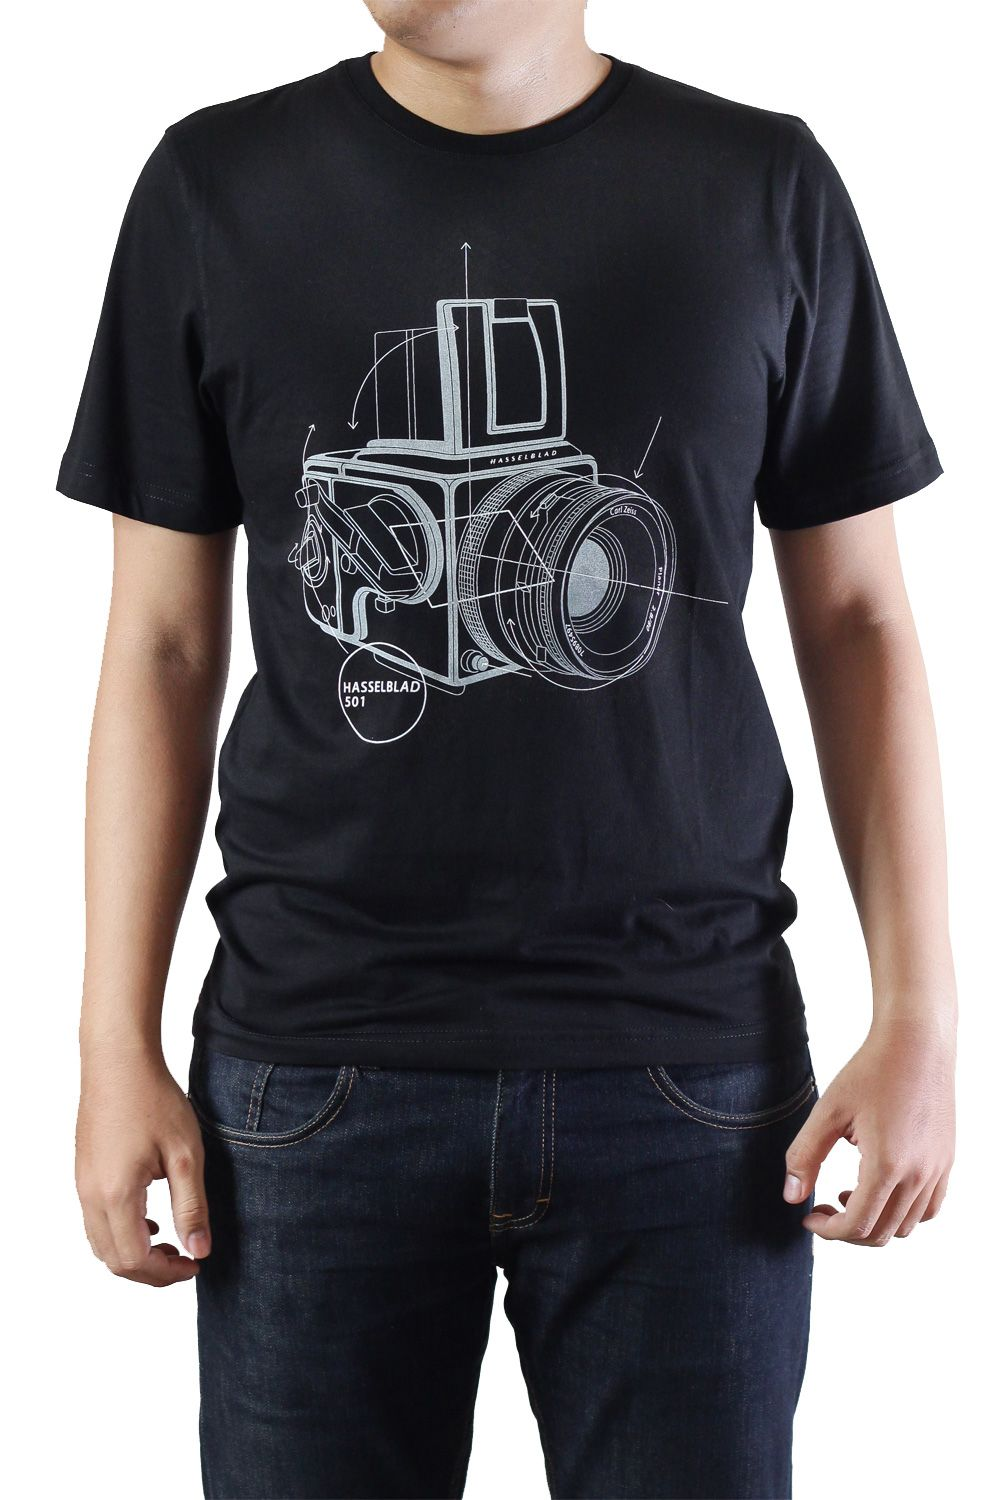 Black dog t shirt ebay - Hasselblad Classic Camera Tee Shirt Black Analog Medium Format Photography